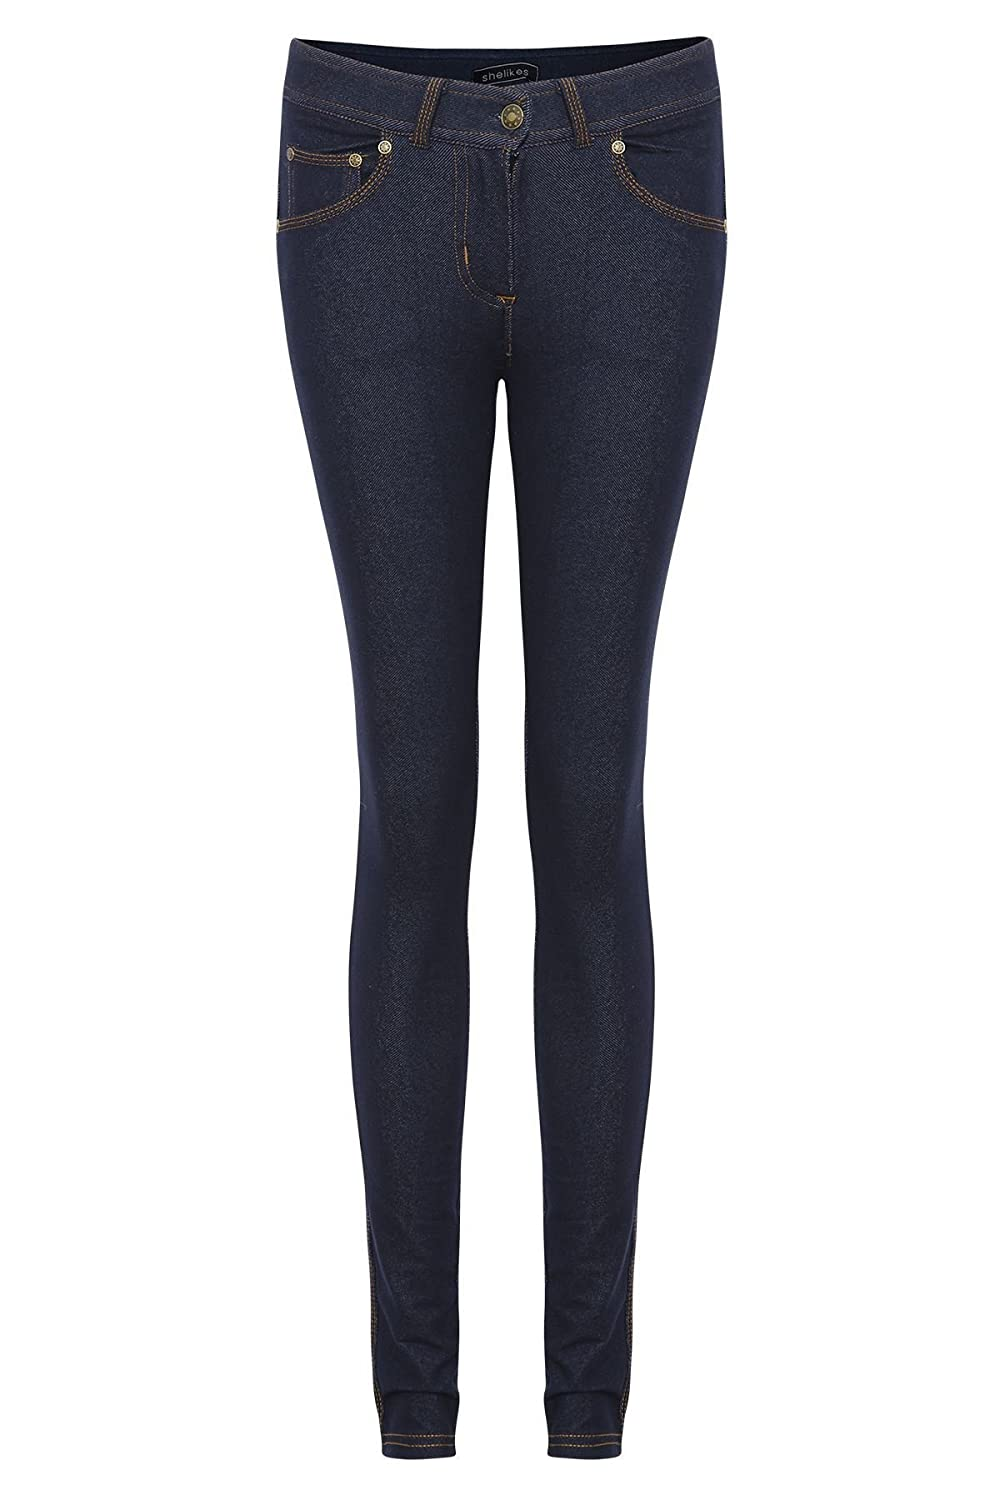 New Skinny Womens Jeans Stretchy Jeggings Ladies Fit Coloured Trousers Size 8-14